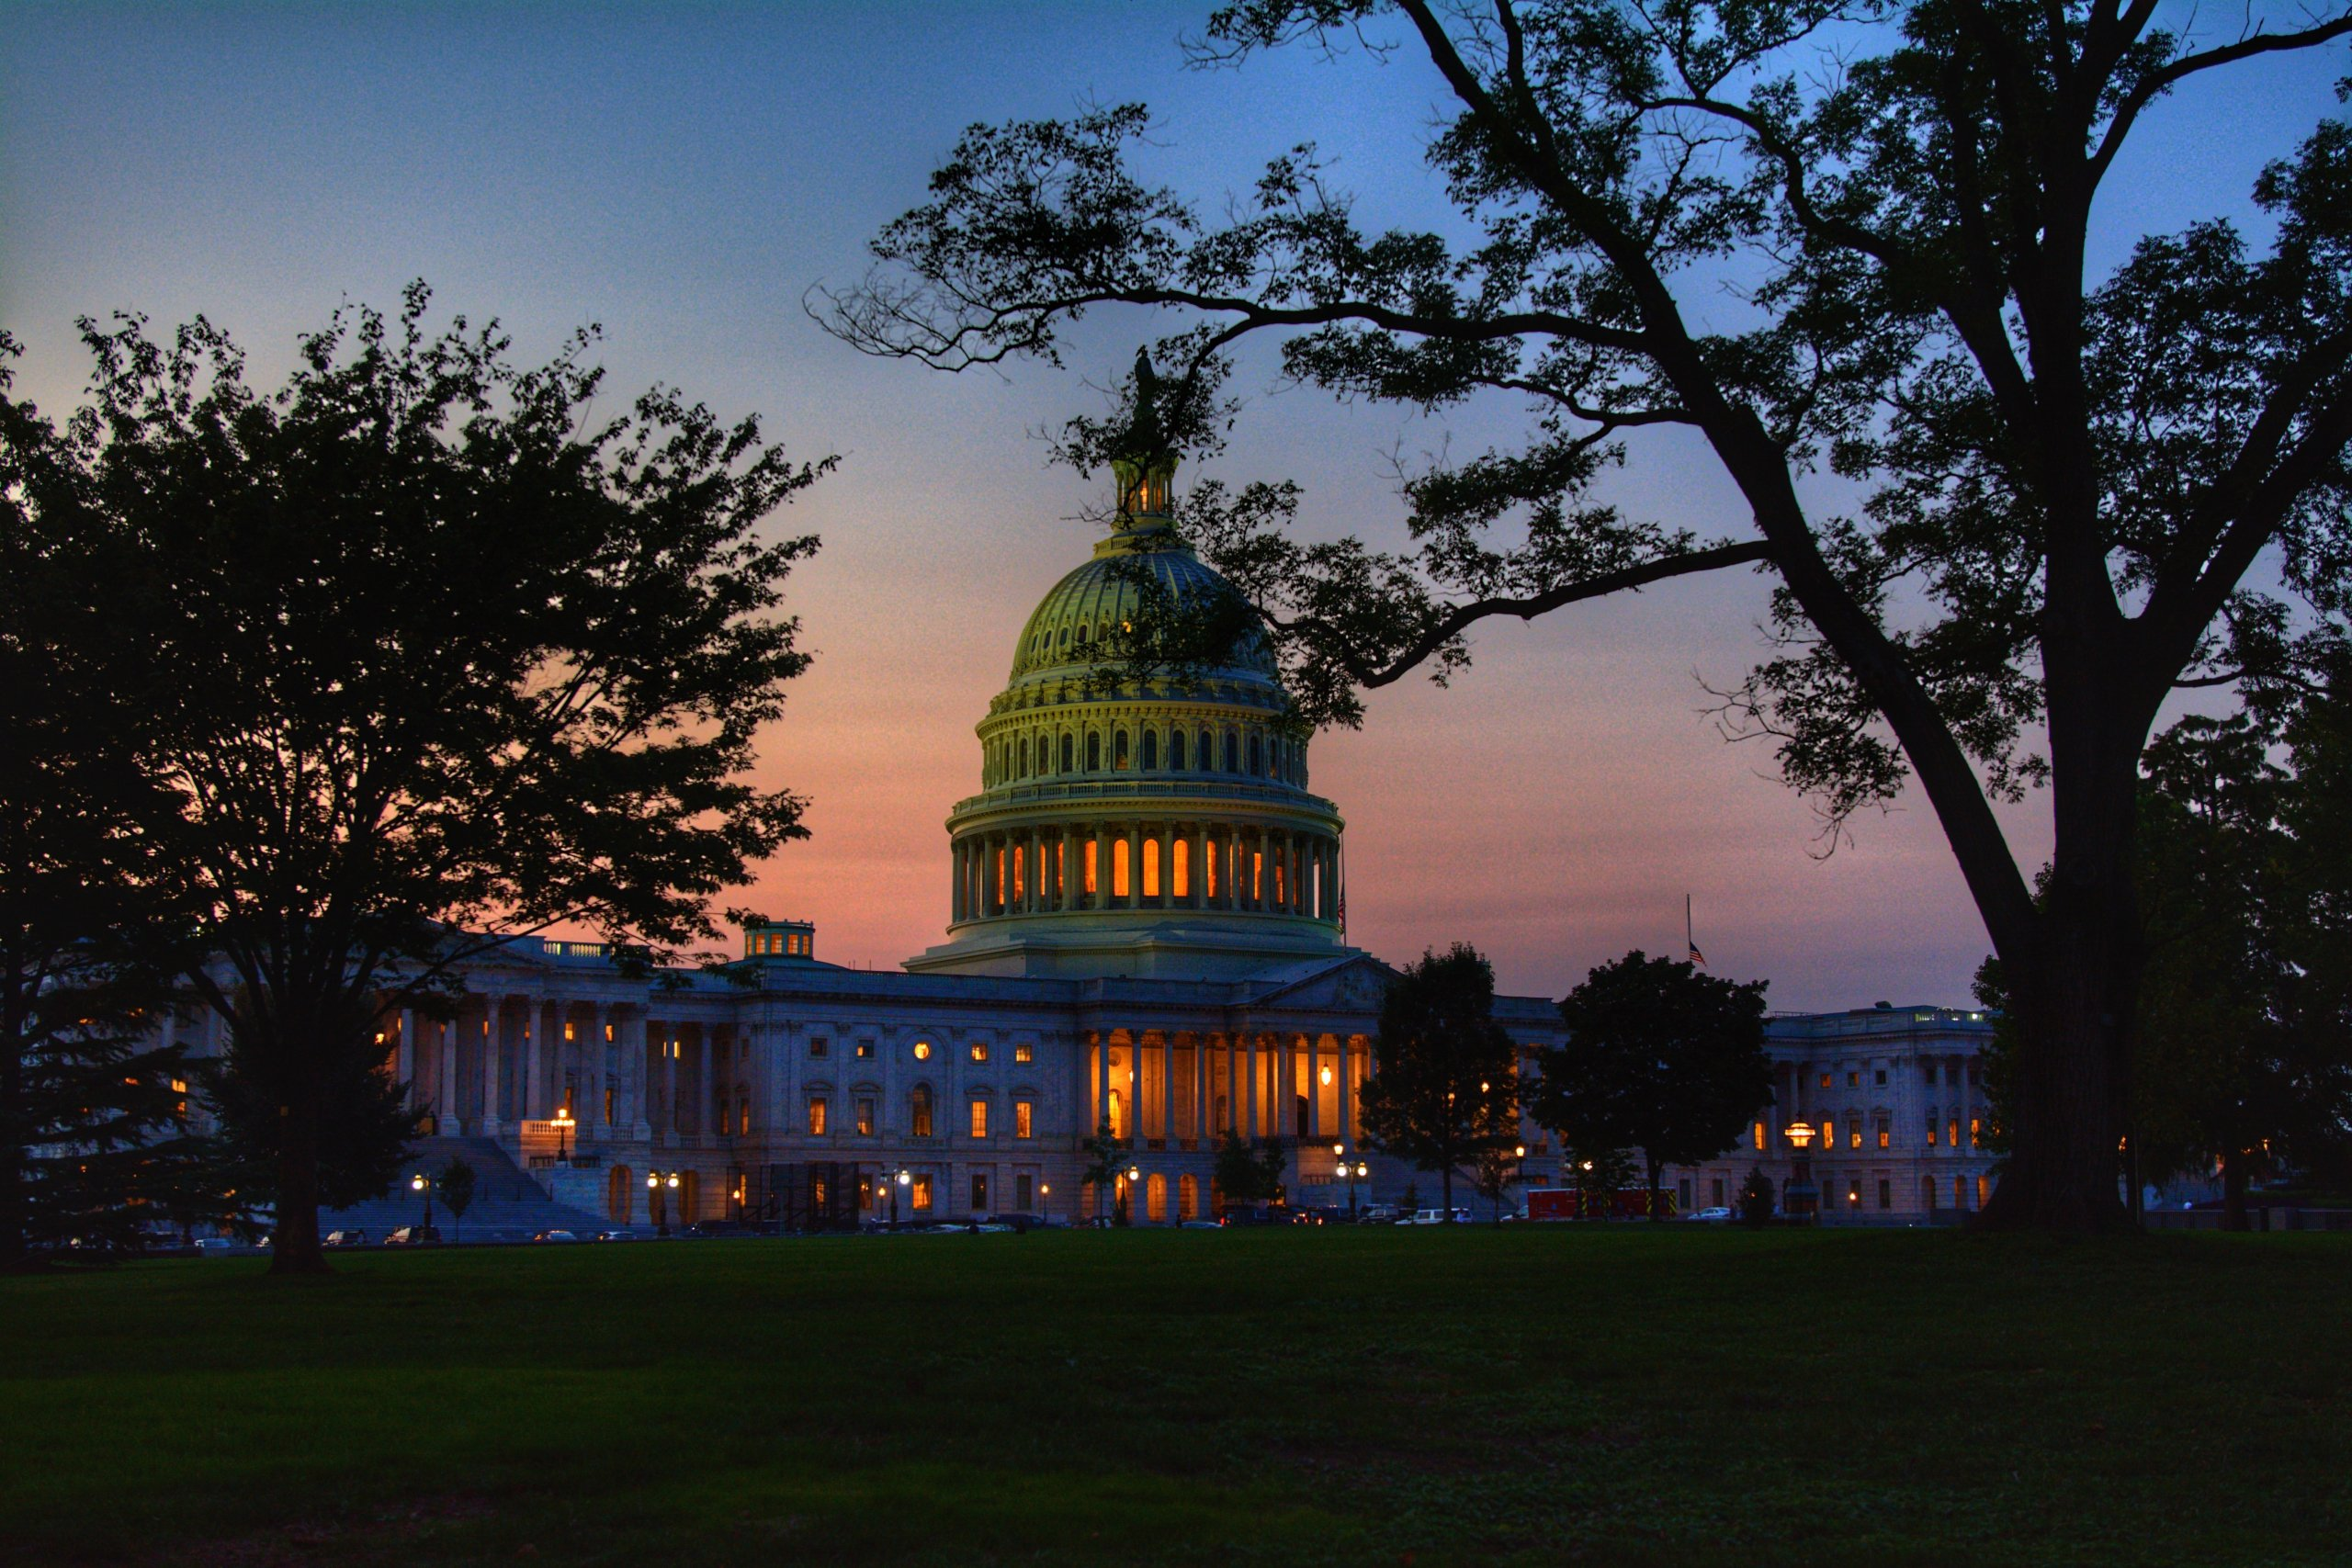 Congress Heads Home, What Does 1/6 Vote Mean?